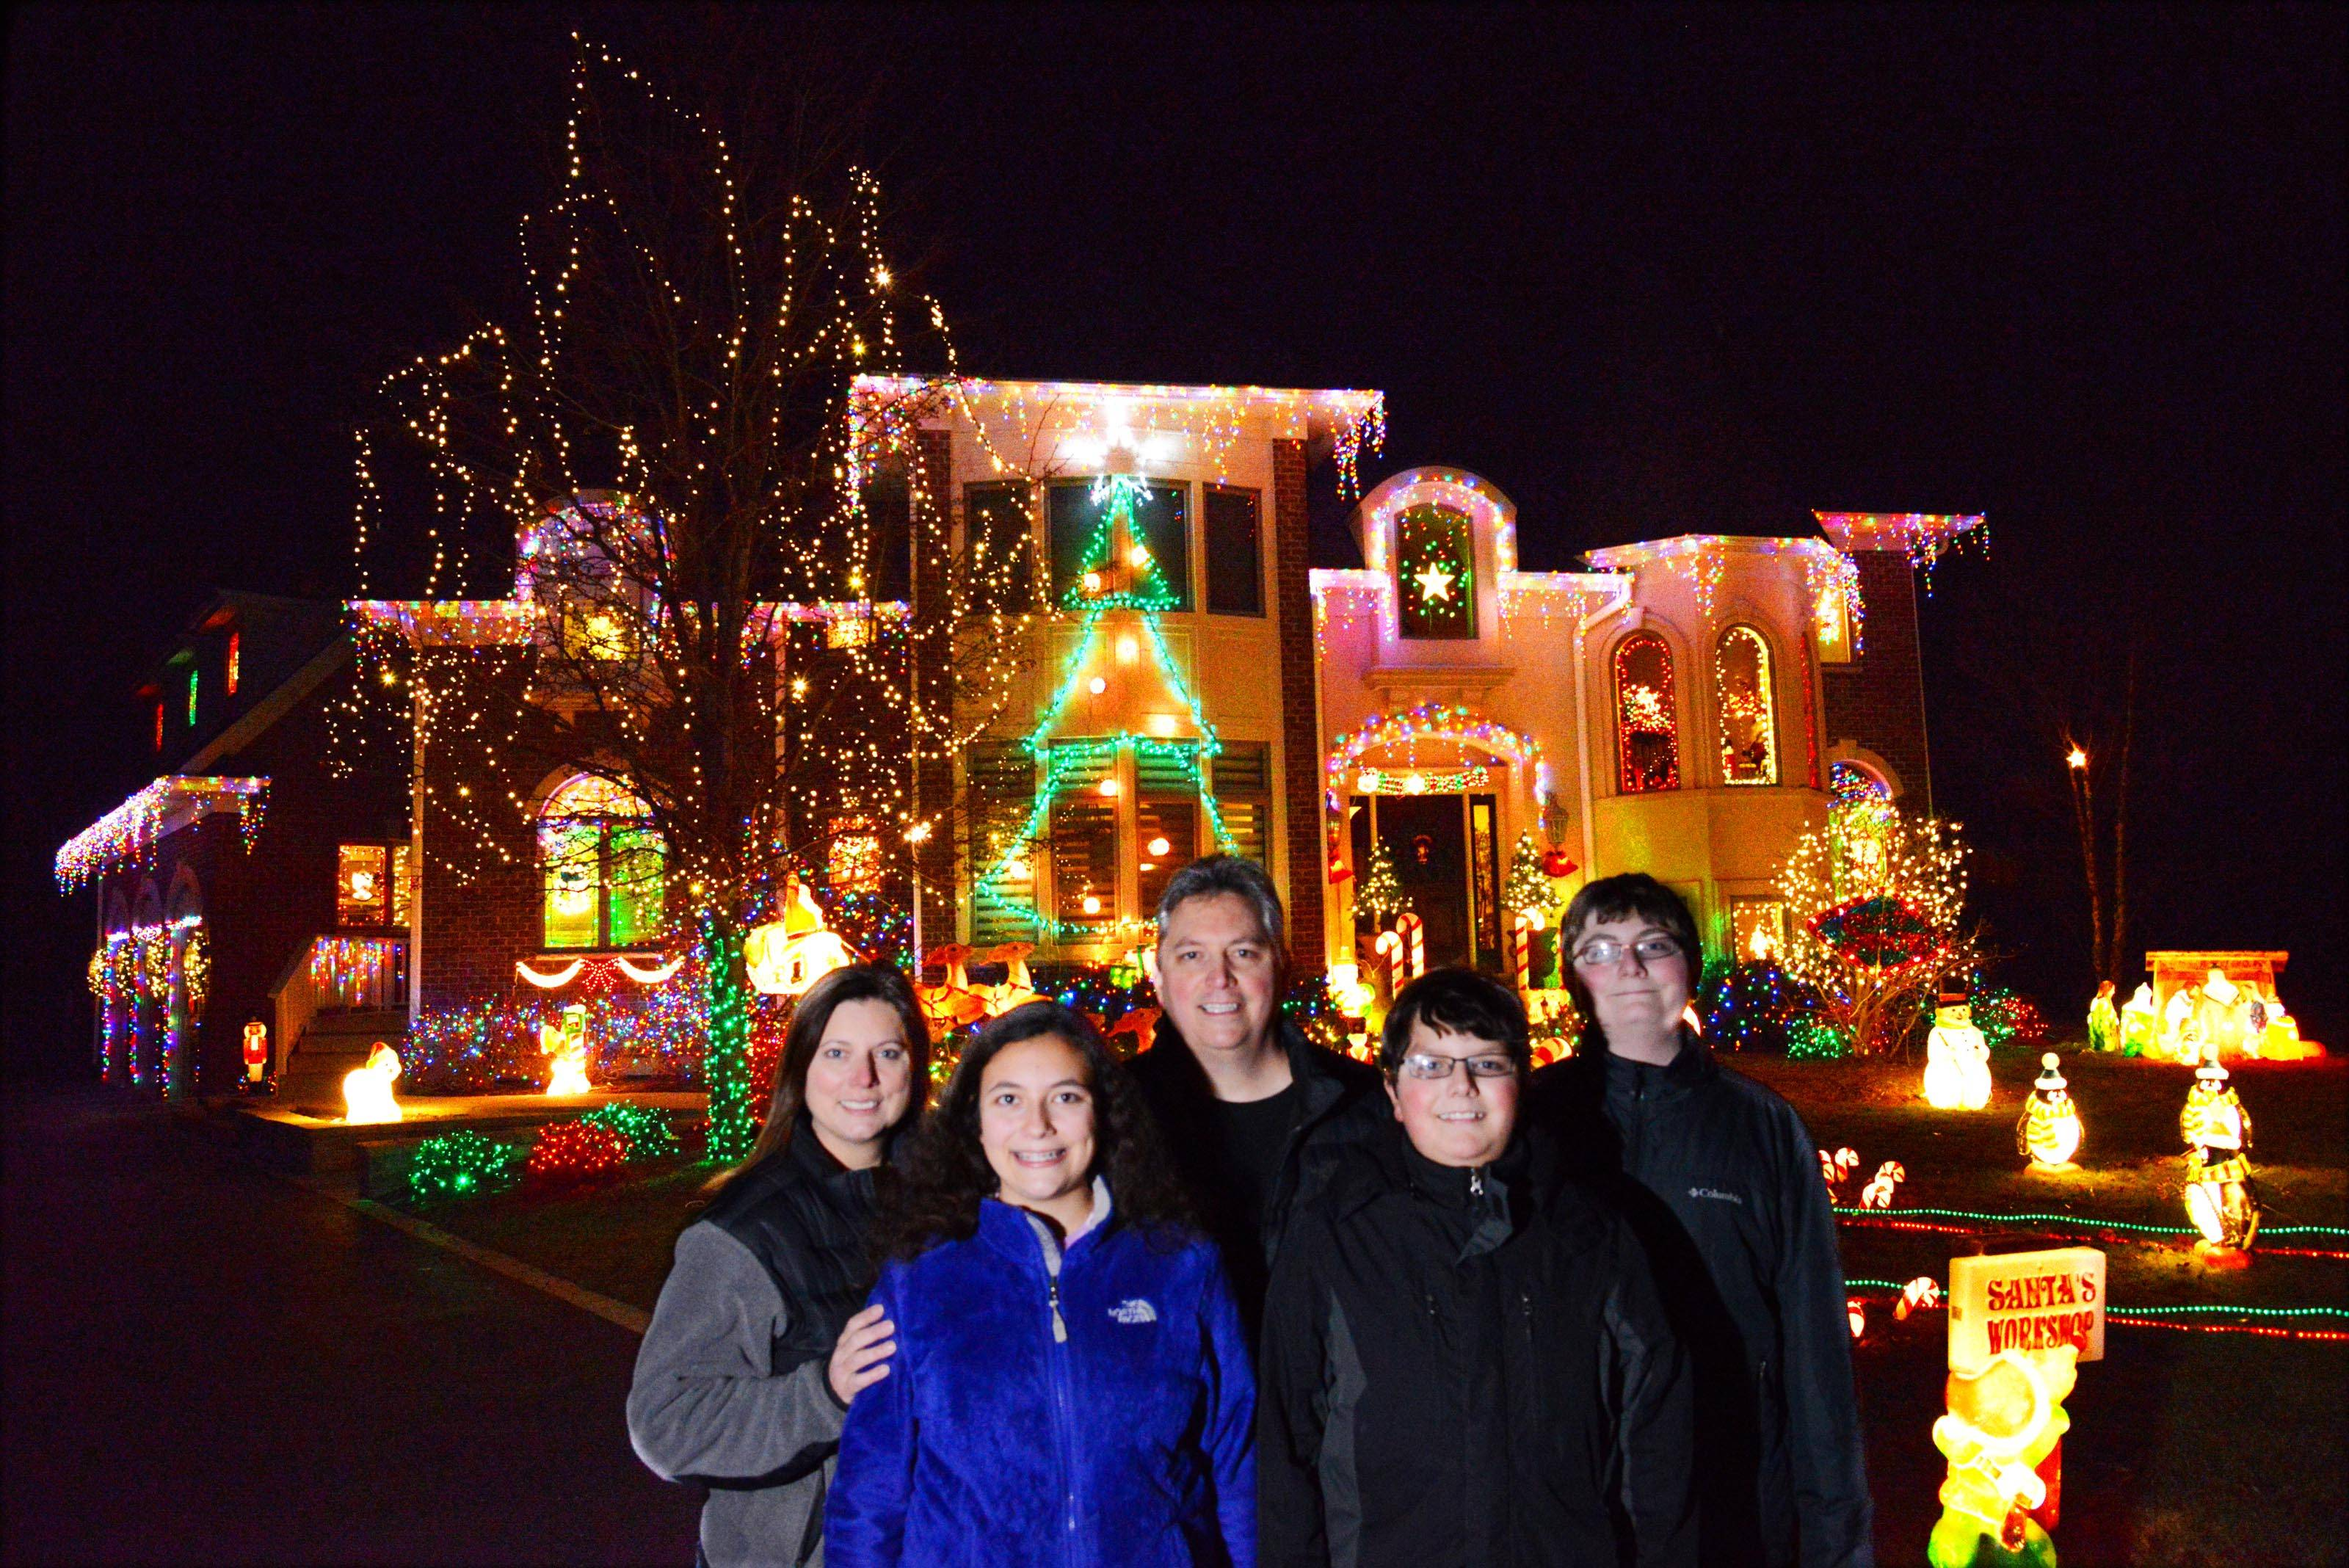 Dante Fiandaca, the 2015 contest winner, had about 19,000 lights on his home at 6 Grayhawk Court in Algonquin. He's shown here with his wife, Sherry, daughter, Jackie, 13, who designed the light layout, and sons Johnny, 12, and Dante Jr., 14.